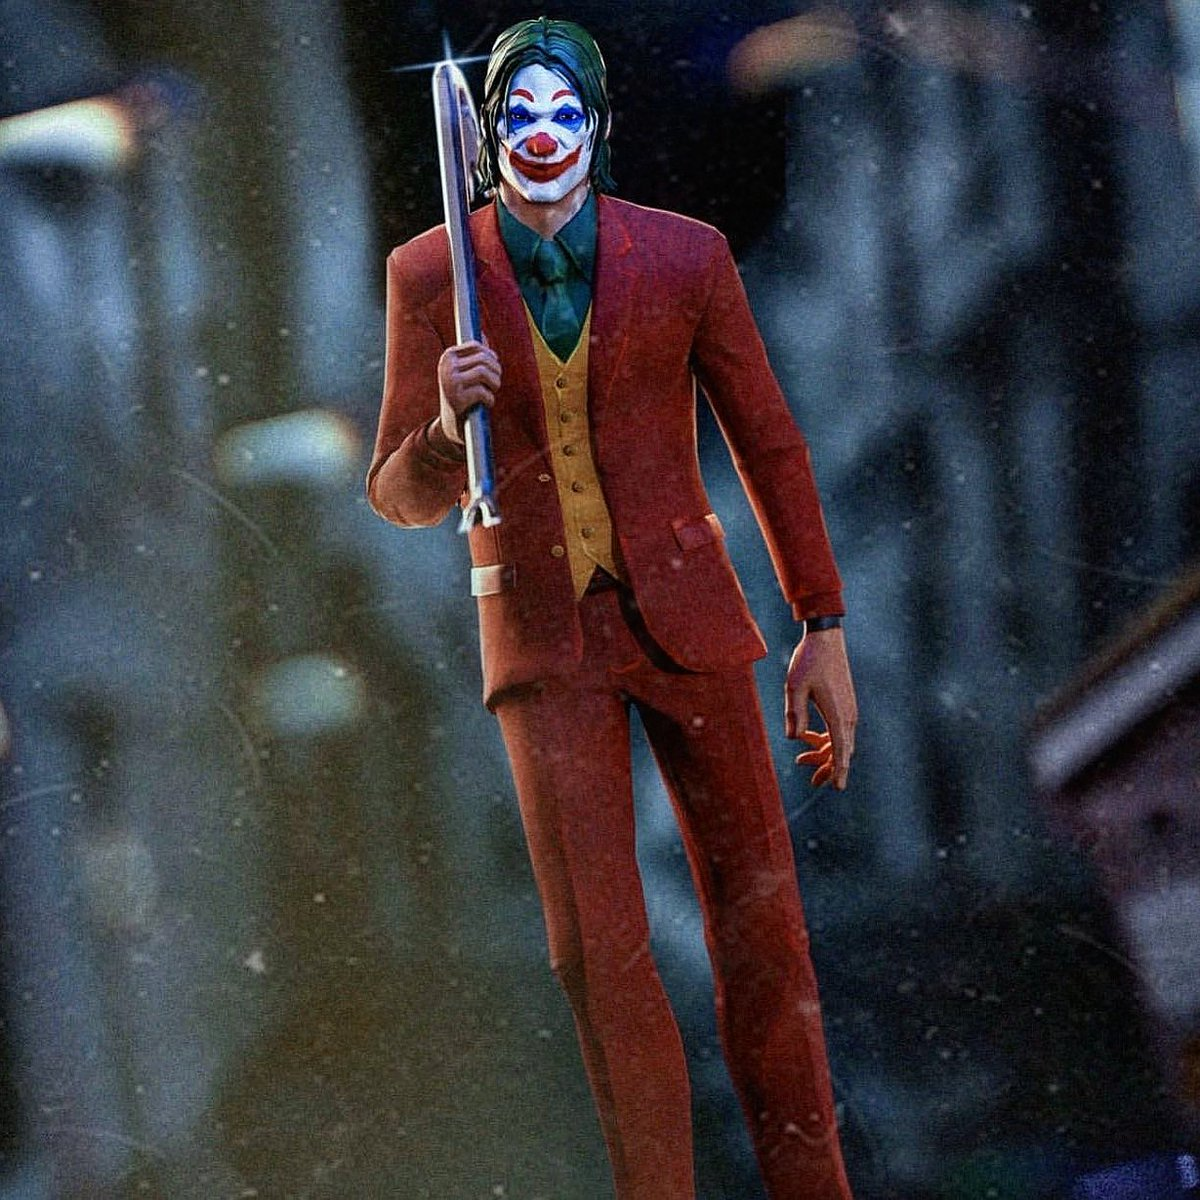 Fortnitefanaticfan On Twitter Fortnite Needs To Collaborate With Joker Movie To Make This Possible Now That Would Be A Great Event Don T You Agree Fortnite Epicgames Fortnitexjoker Joker Jokermovie Collaboration Makethispossible The laugh riot back bling is bundled with this outfit. fortnite needs to collaborate